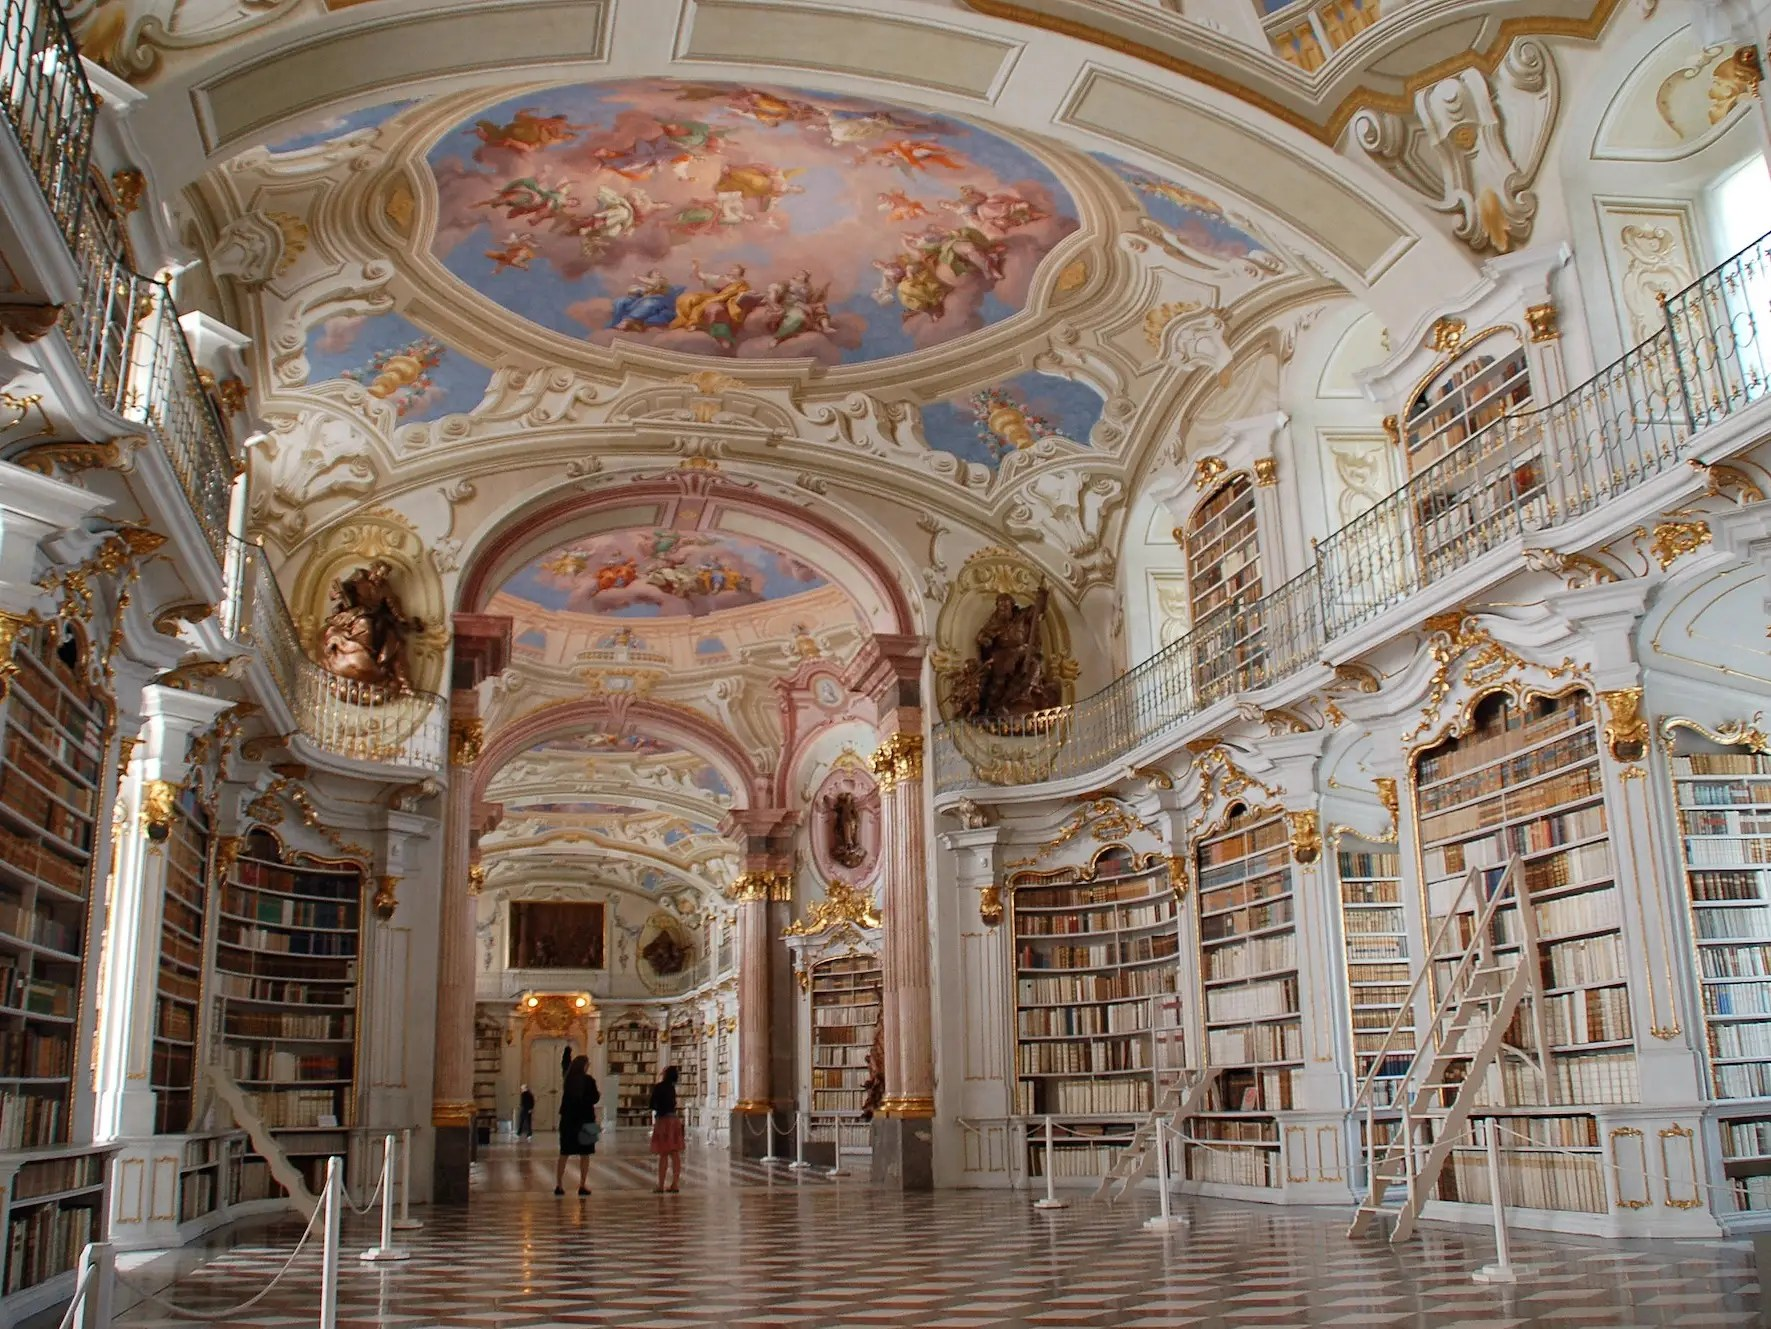 With the Alps as a background, the Admont Library — located in the Admont Monastery in Admont, Austria — is the second largest monastery library in the world. The beautiful painted ceilings depict the various stages of human knowledge.